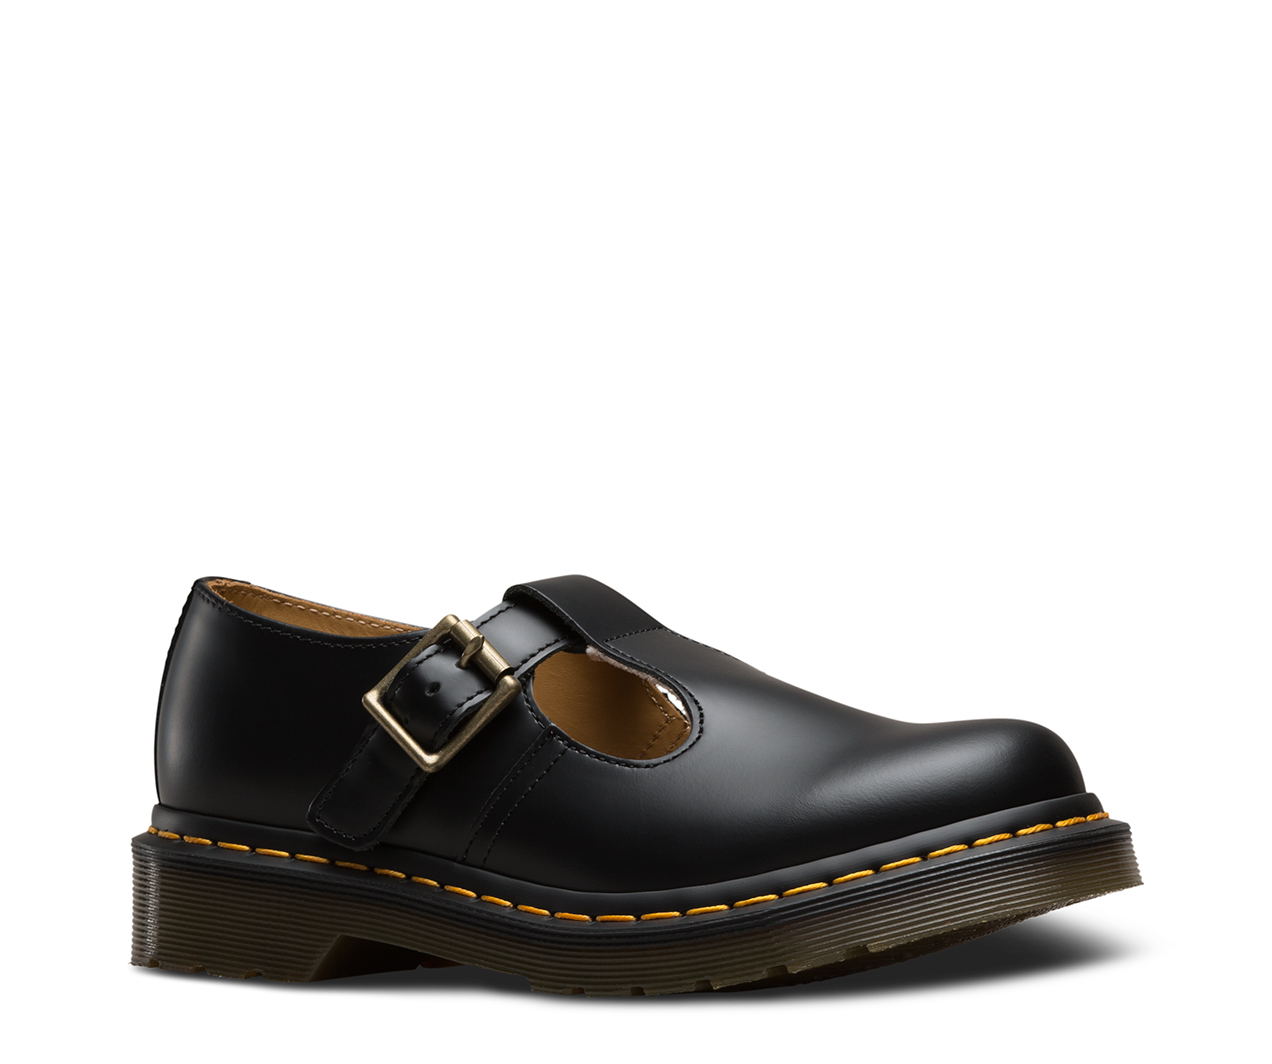 Dr. Martens Womens Polley T Bar Shoe - Z6741